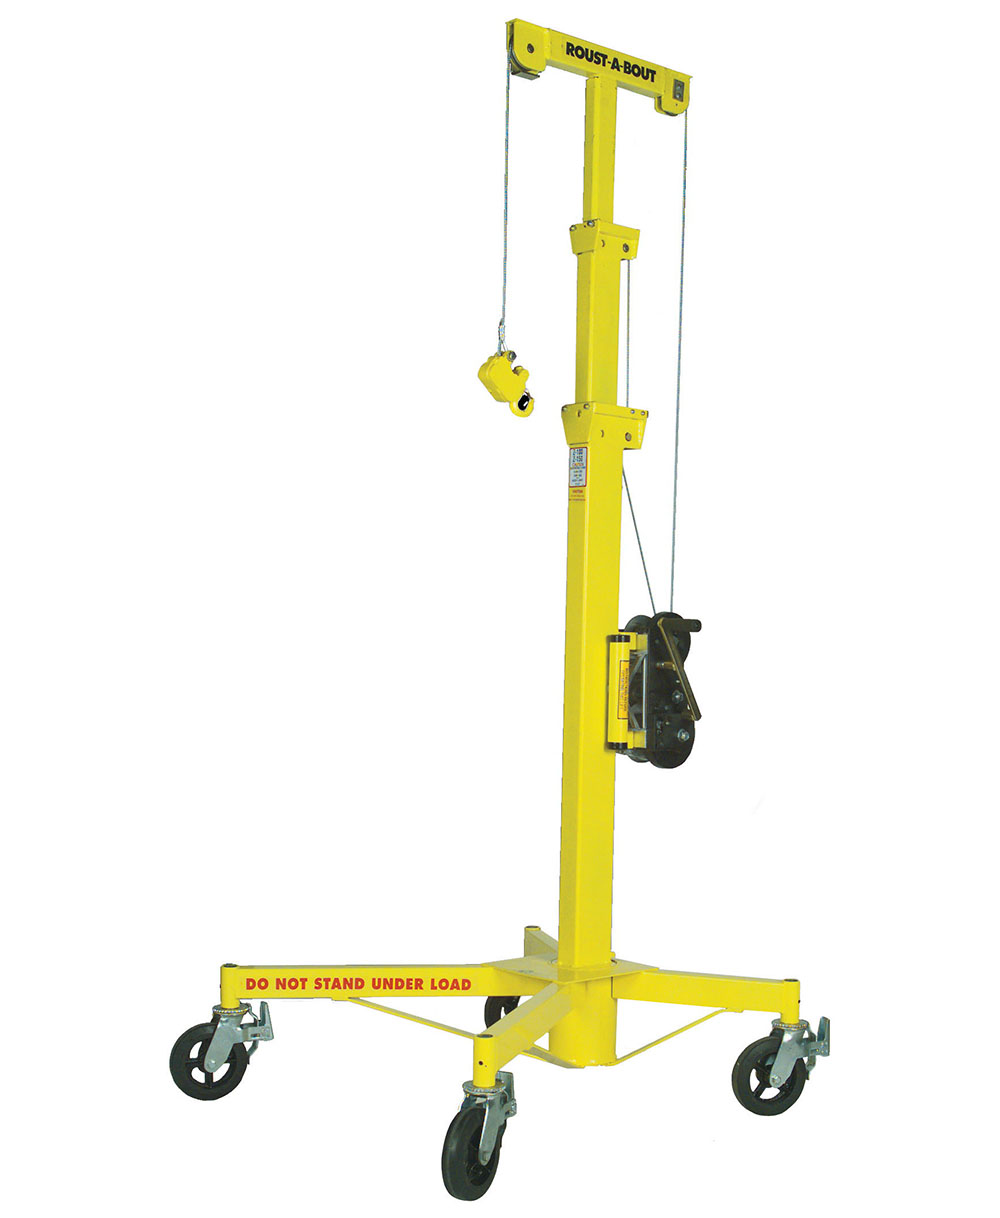 Material Lifting Jacks : Sumner roust a bout™ material lift and fab